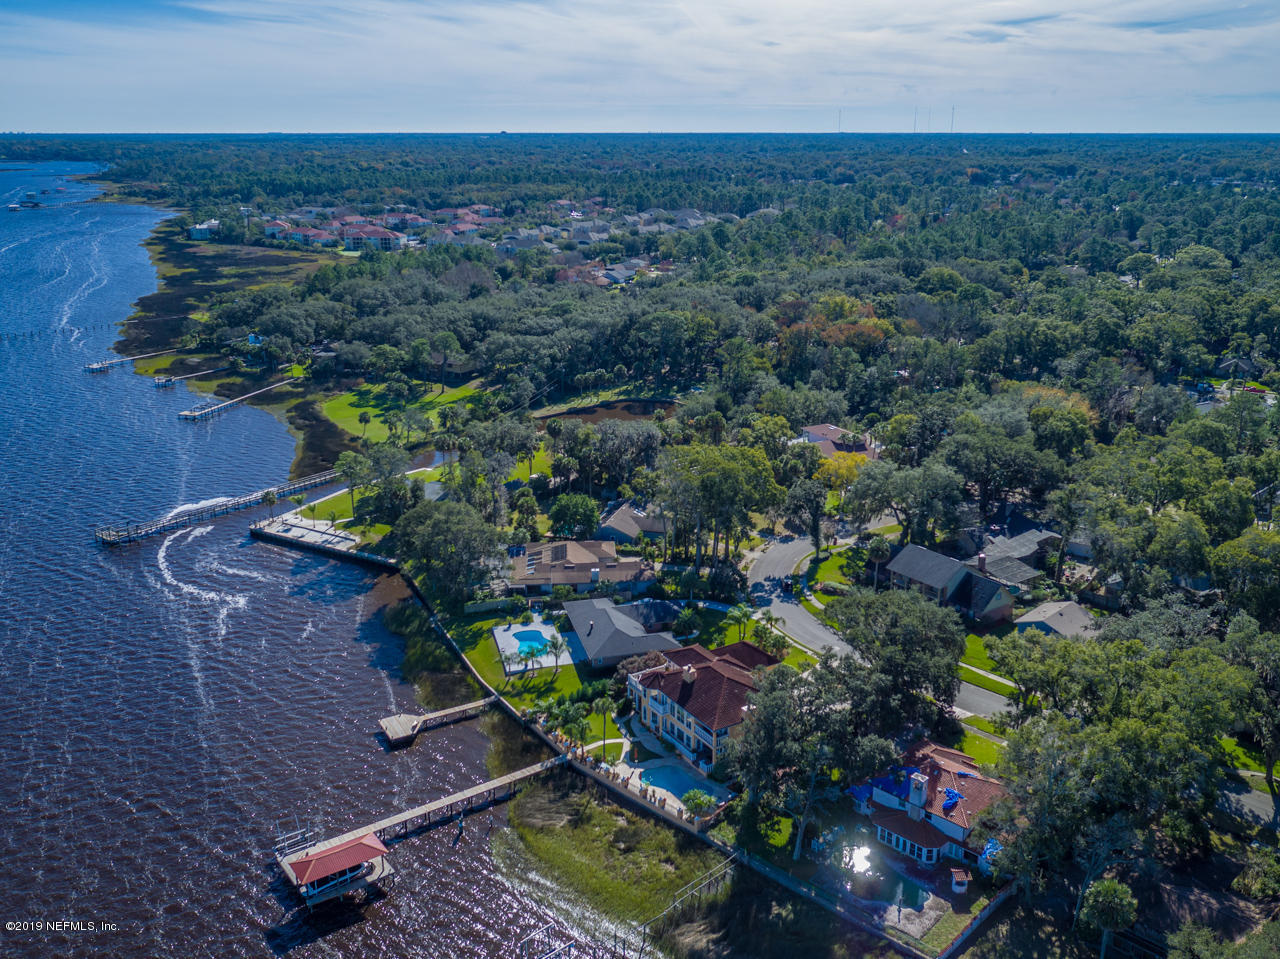 5477 RIVER TRAIL, JACKSONVILLE, FLORIDA 32277, 4 Bedrooms Bedrooms, ,4 BathroomsBathrooms,Residential - single family,For sale,RIVER TRAIL,972945